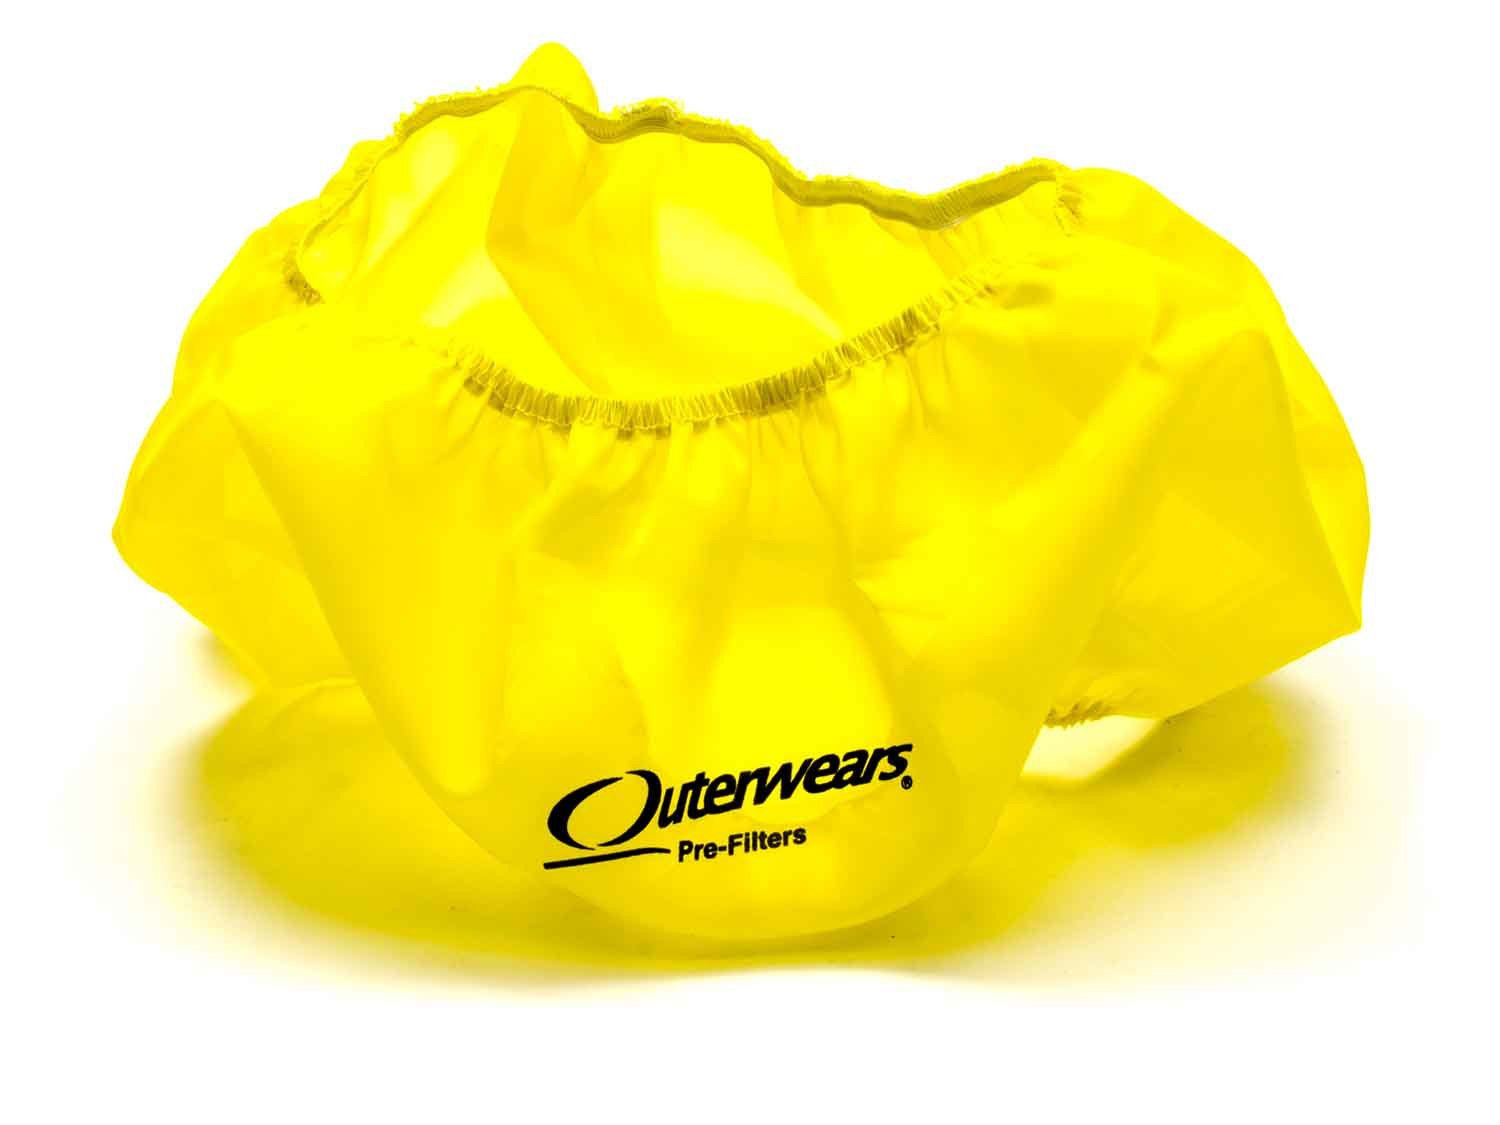 Outerwears 10-1004-04 Air Filter Wrap, Pre Filter, 14 in OD, 5 in Tall, Polyester, Yellow, Each